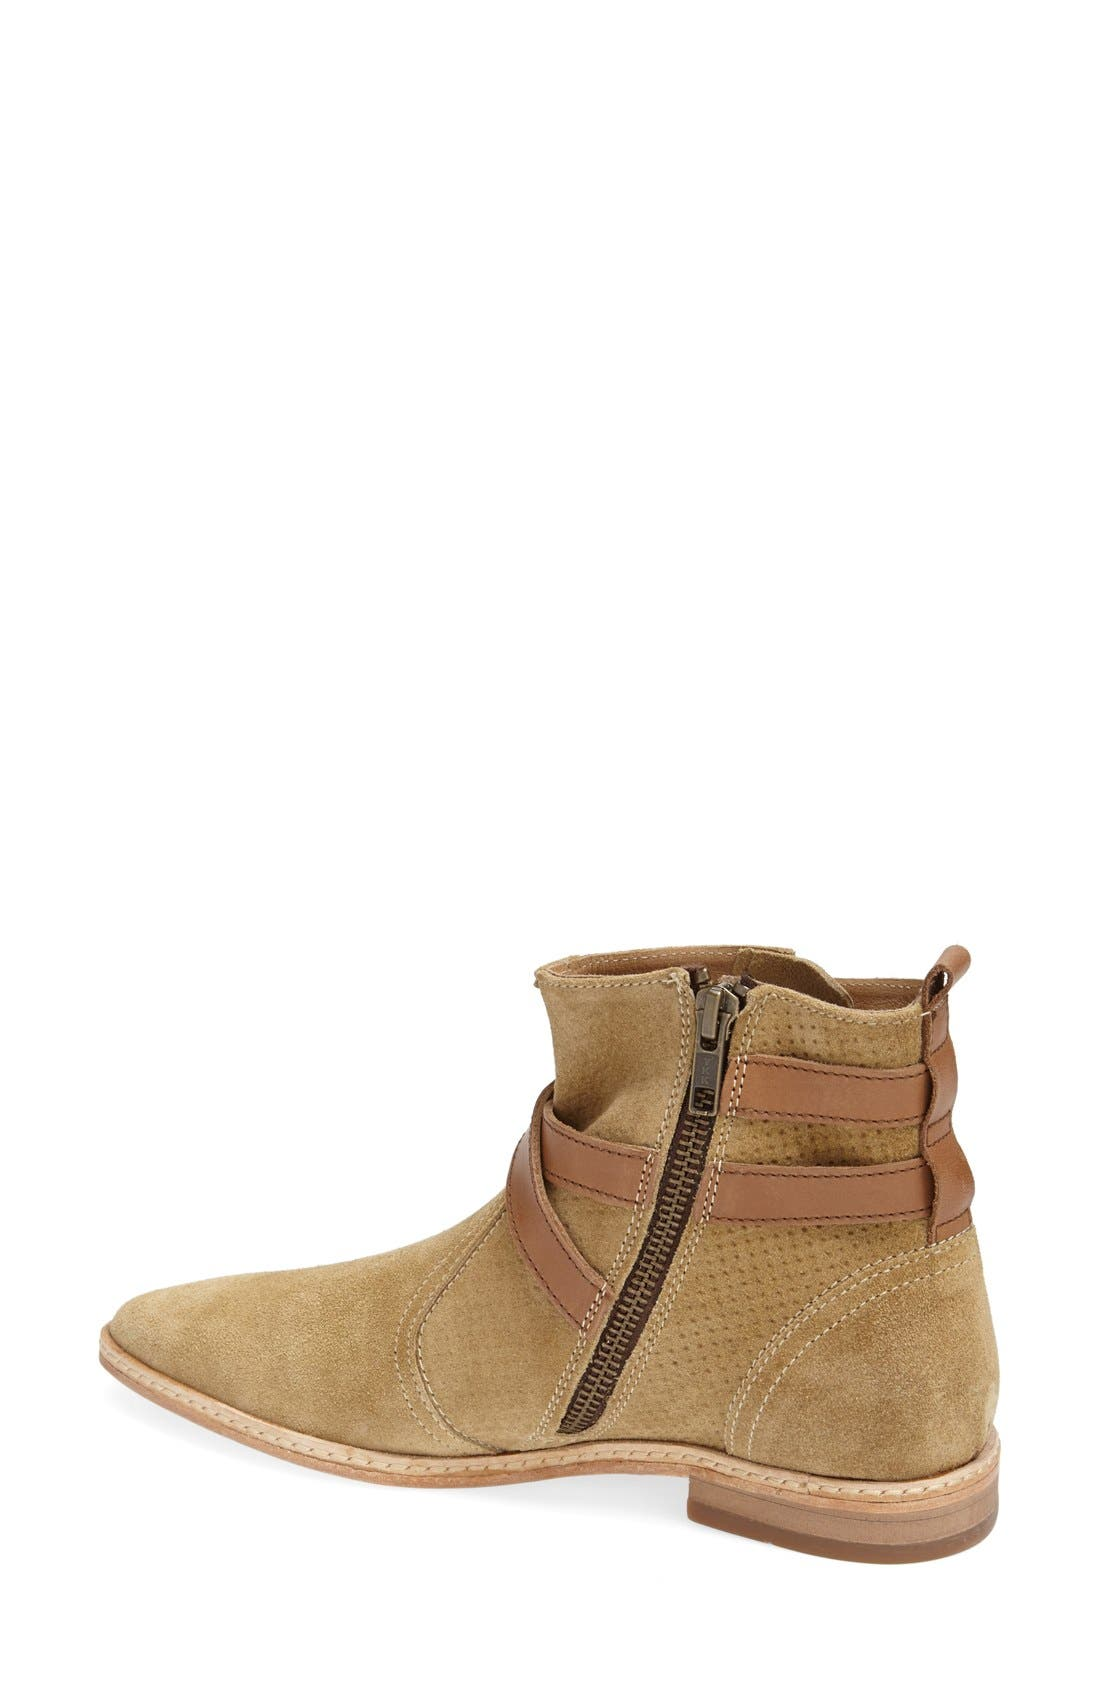 Alternate Image 2  - H by Hudson 'Tab' Suede Chelsea Bootie (Women)